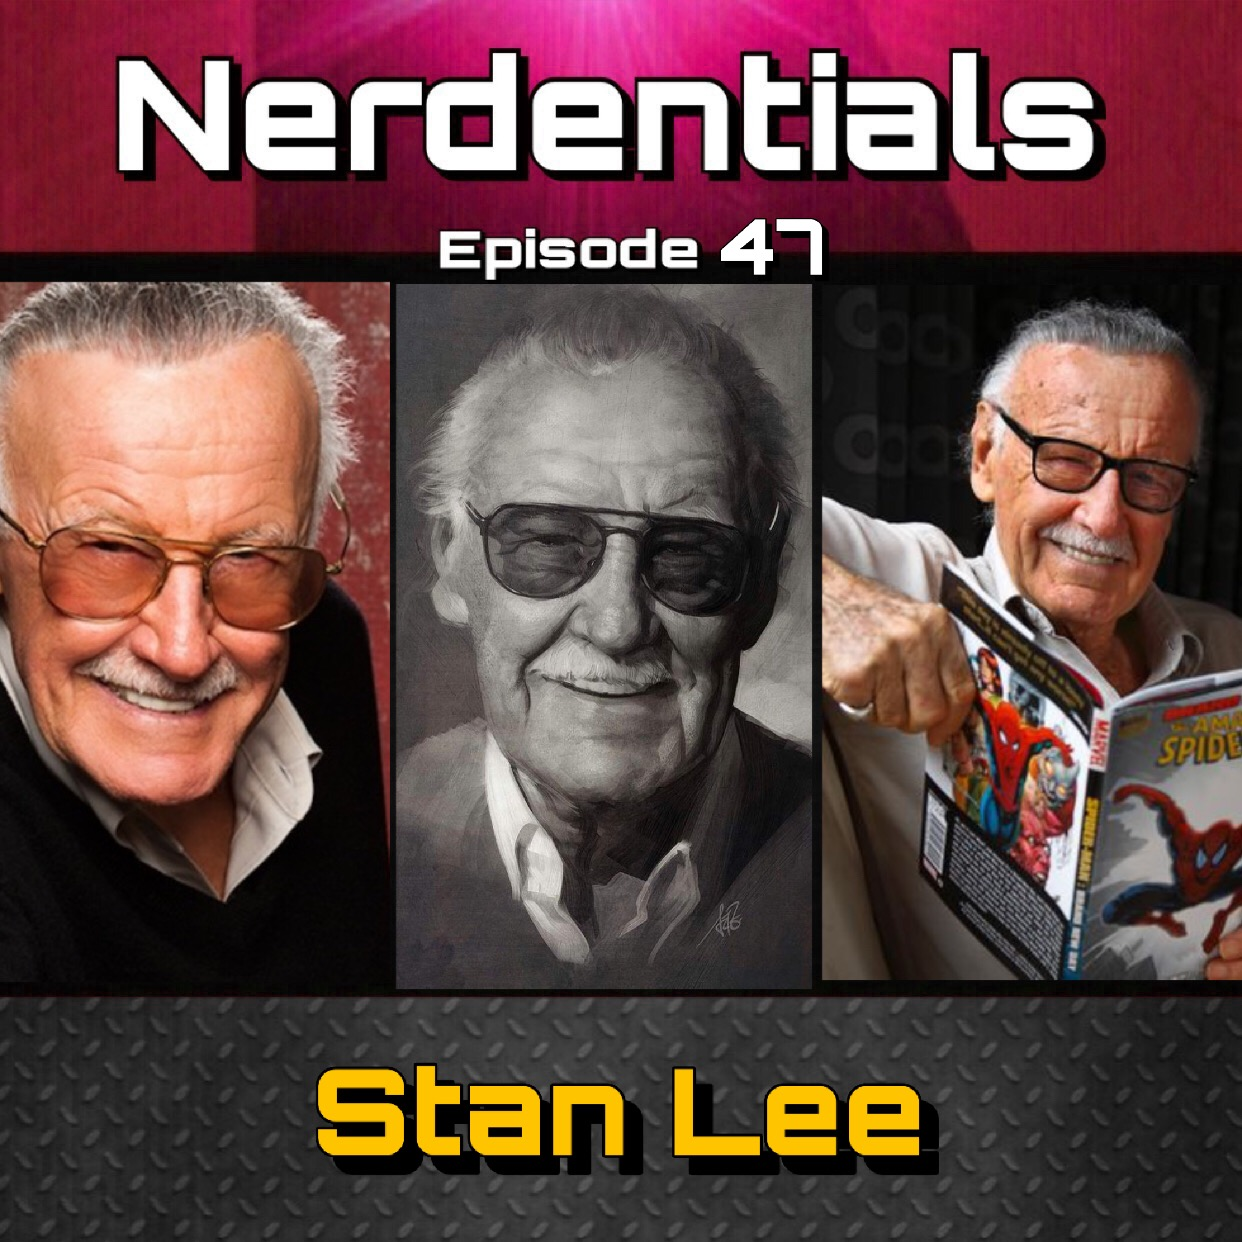 - Welcome to Nerdentials! Your weekly dose of the nerdy essentials. Covering Film, TV, Video Games and Comics.This Week we pay respects to the great comic book legend himself, Stan Lee. We give some personal testimonies and celebrate what made Stan Lee special to each of us then we dive into our favorite cameos the Legend made in the MCU.